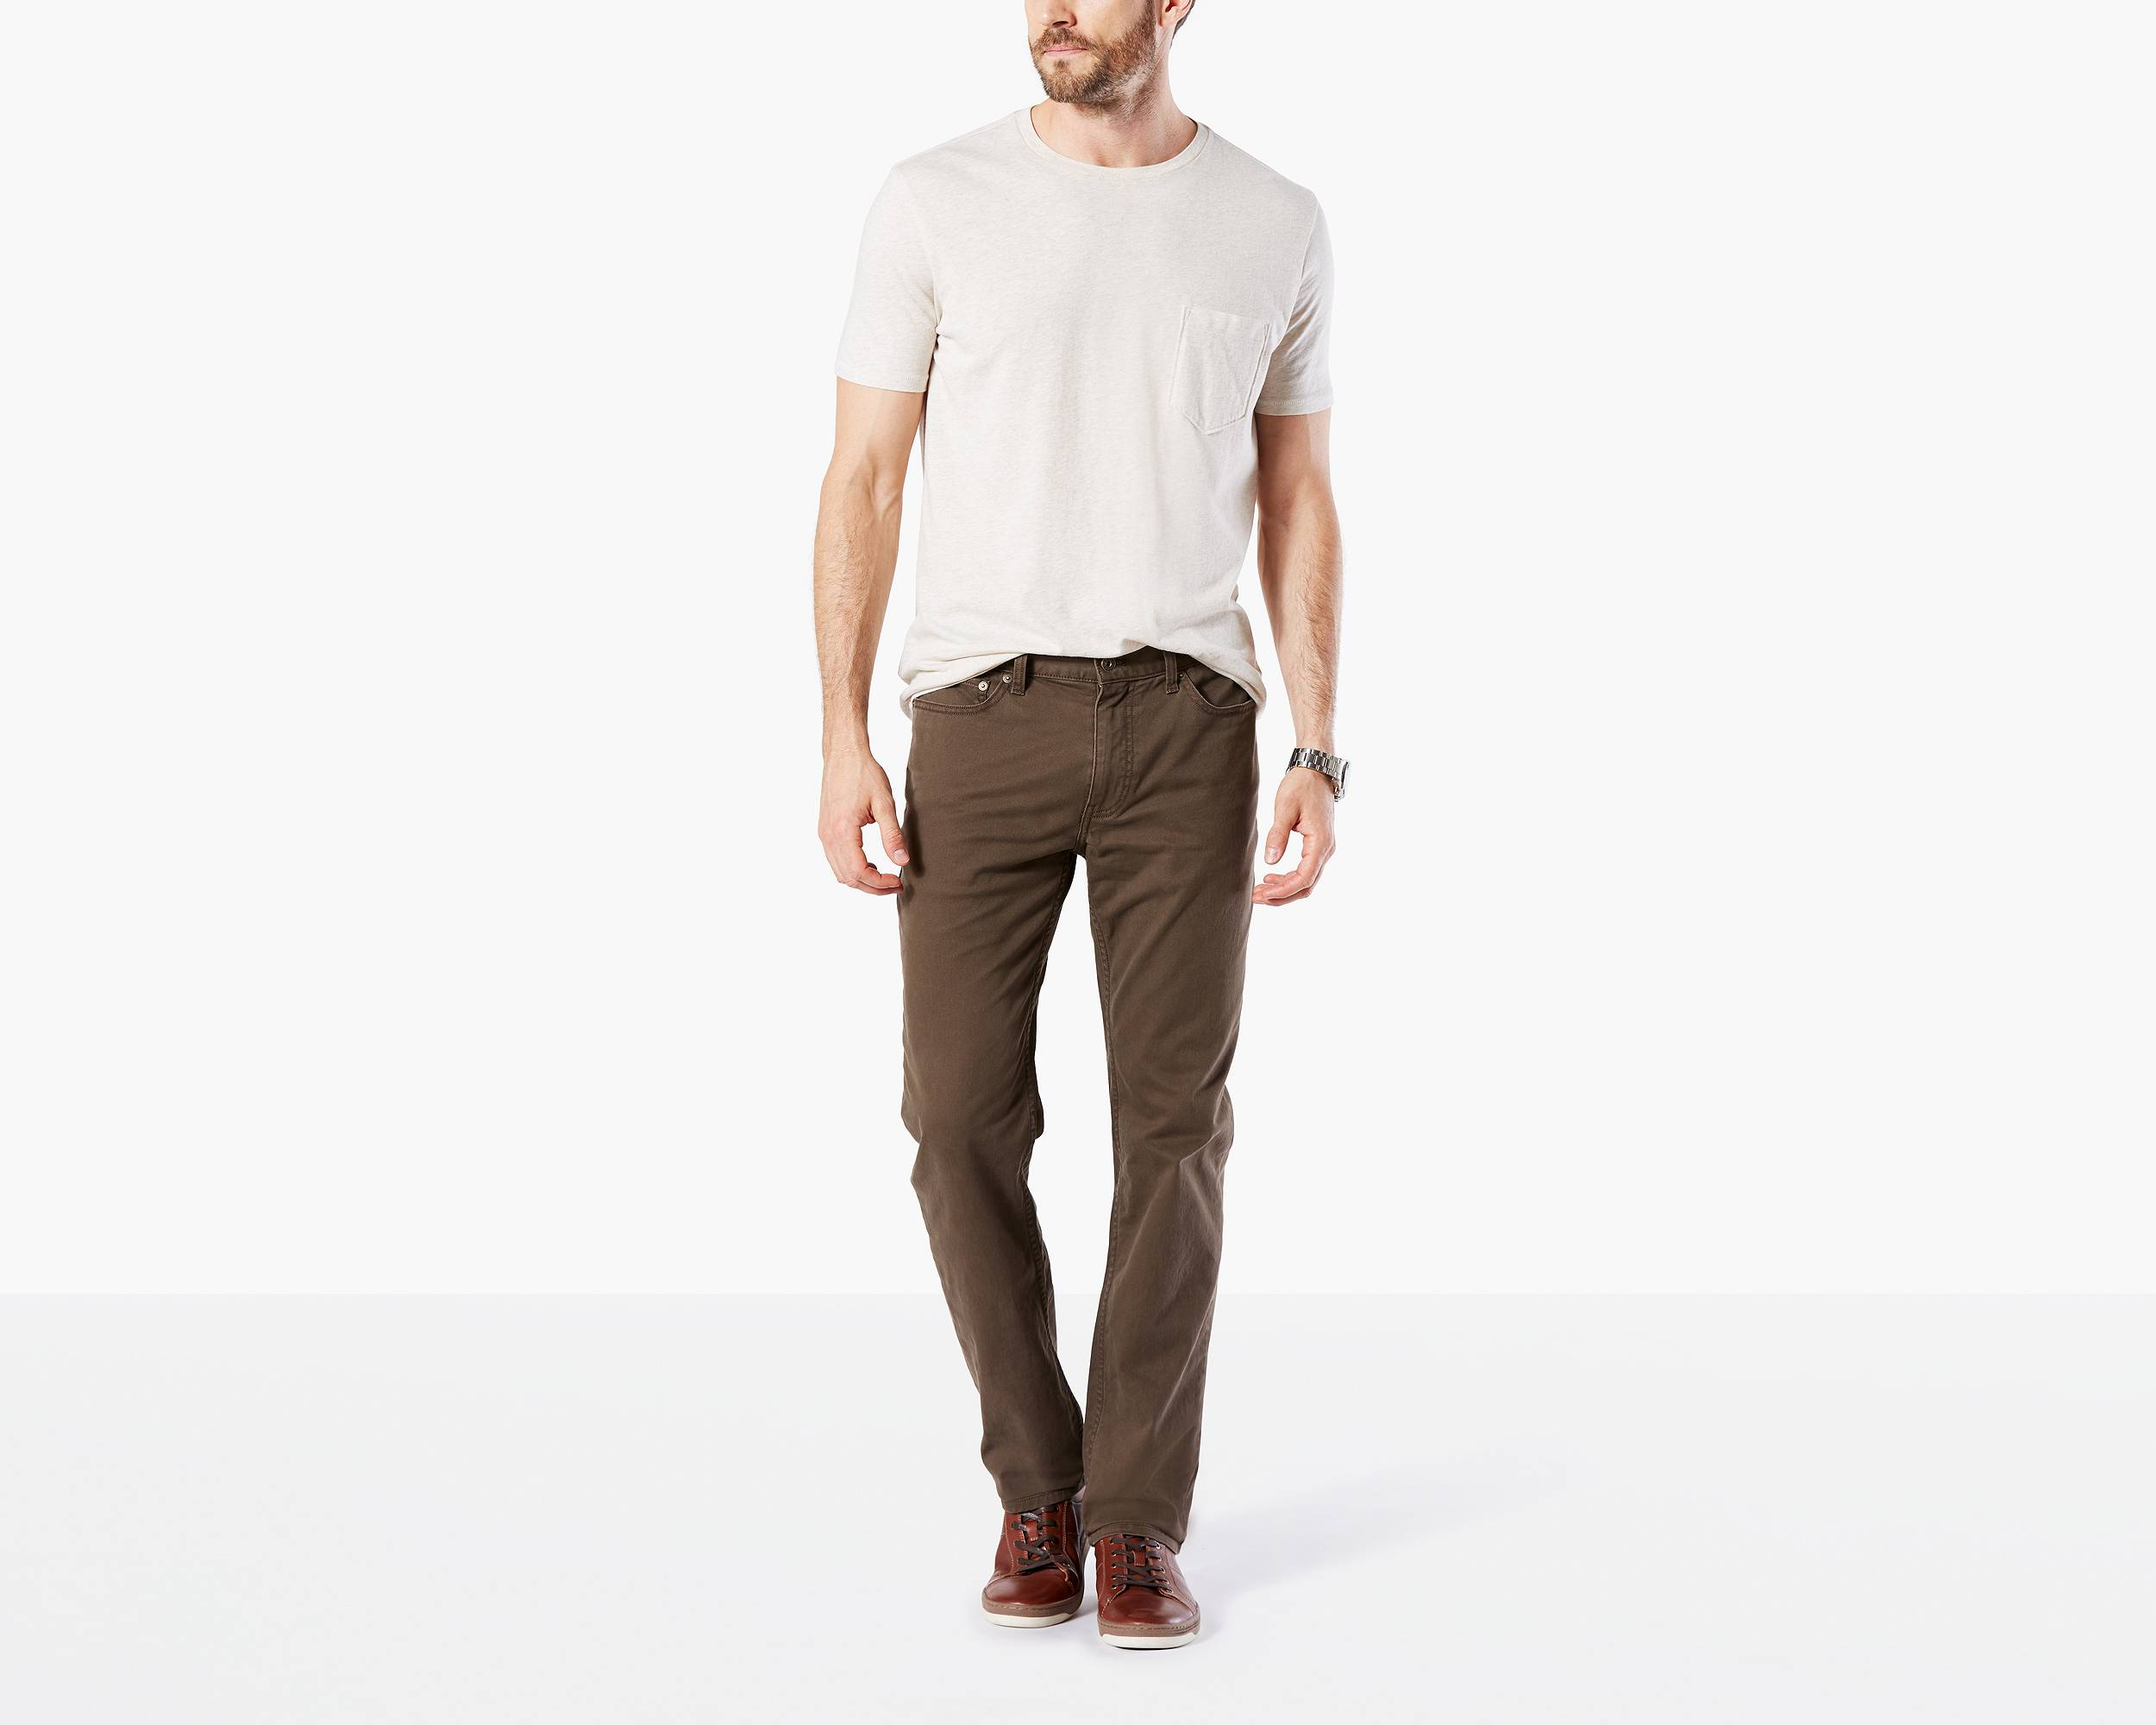 Jean Cut Pants, Slim Tapered Fit by Dockers